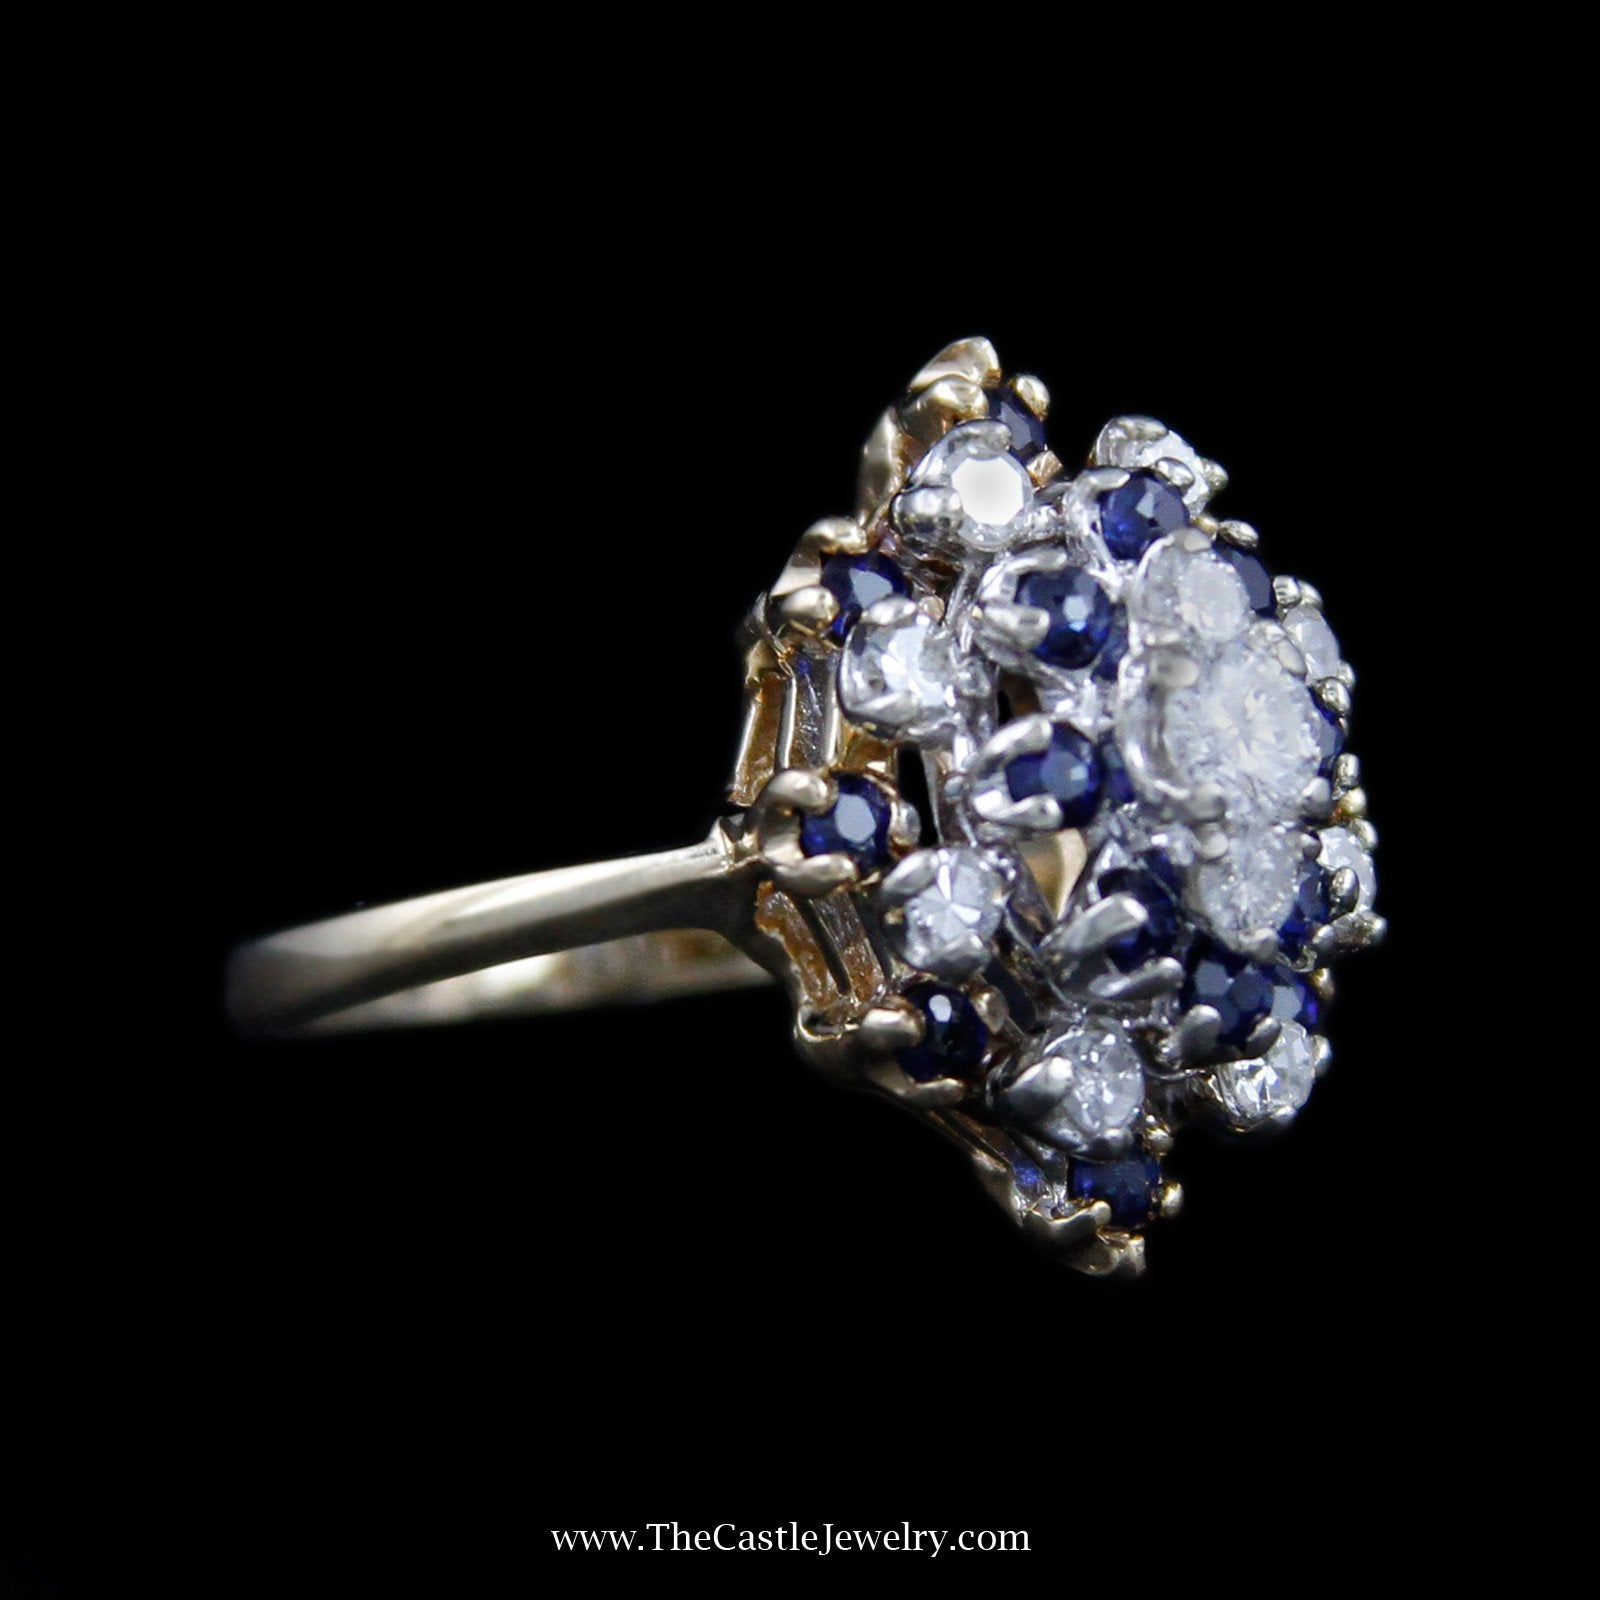 Stunning Marquise Shaped Cluster with Diamonds & Sapphires in 14K Yellow Gold